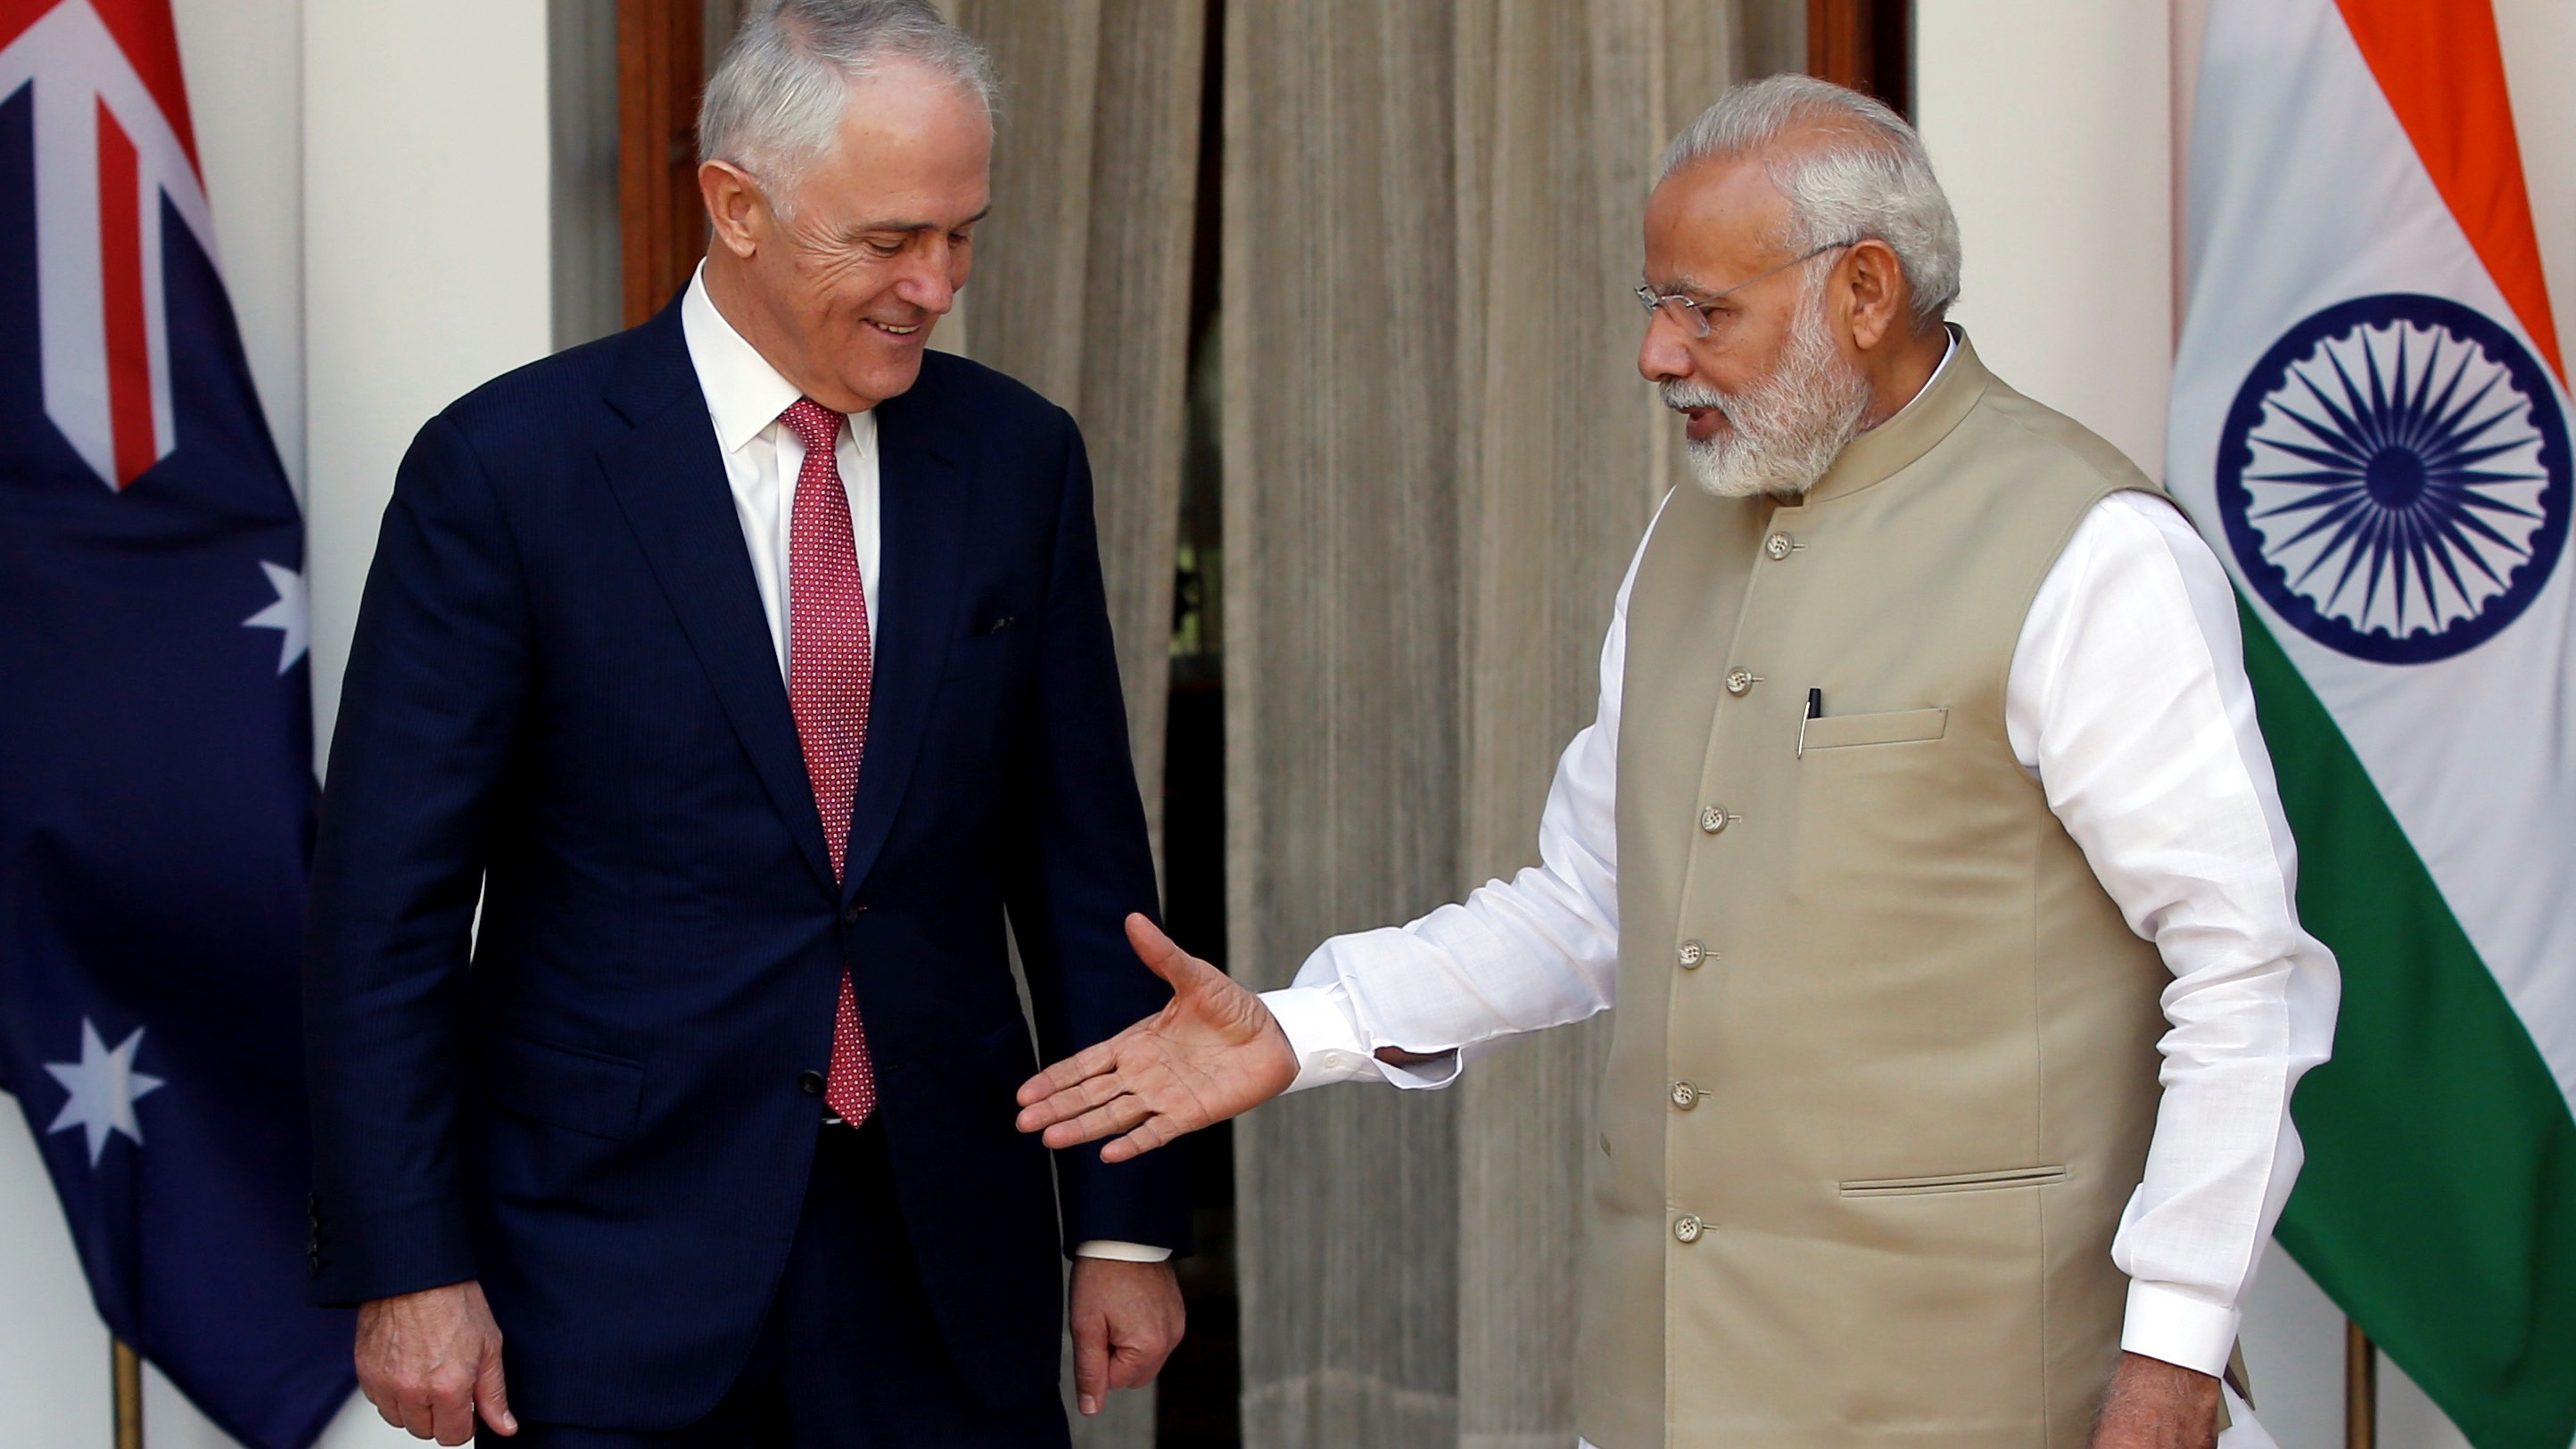 India's Prime Minister Narendra Modi (R) extends his hand for a handshake with his Australian counterpart Malcolm Turnbull during a photo opportunity ahead of their meeting at Hyderabad House in New Delhi, India April 10, 2017. REUTERS/Adnan Abidi - RTX34VLU